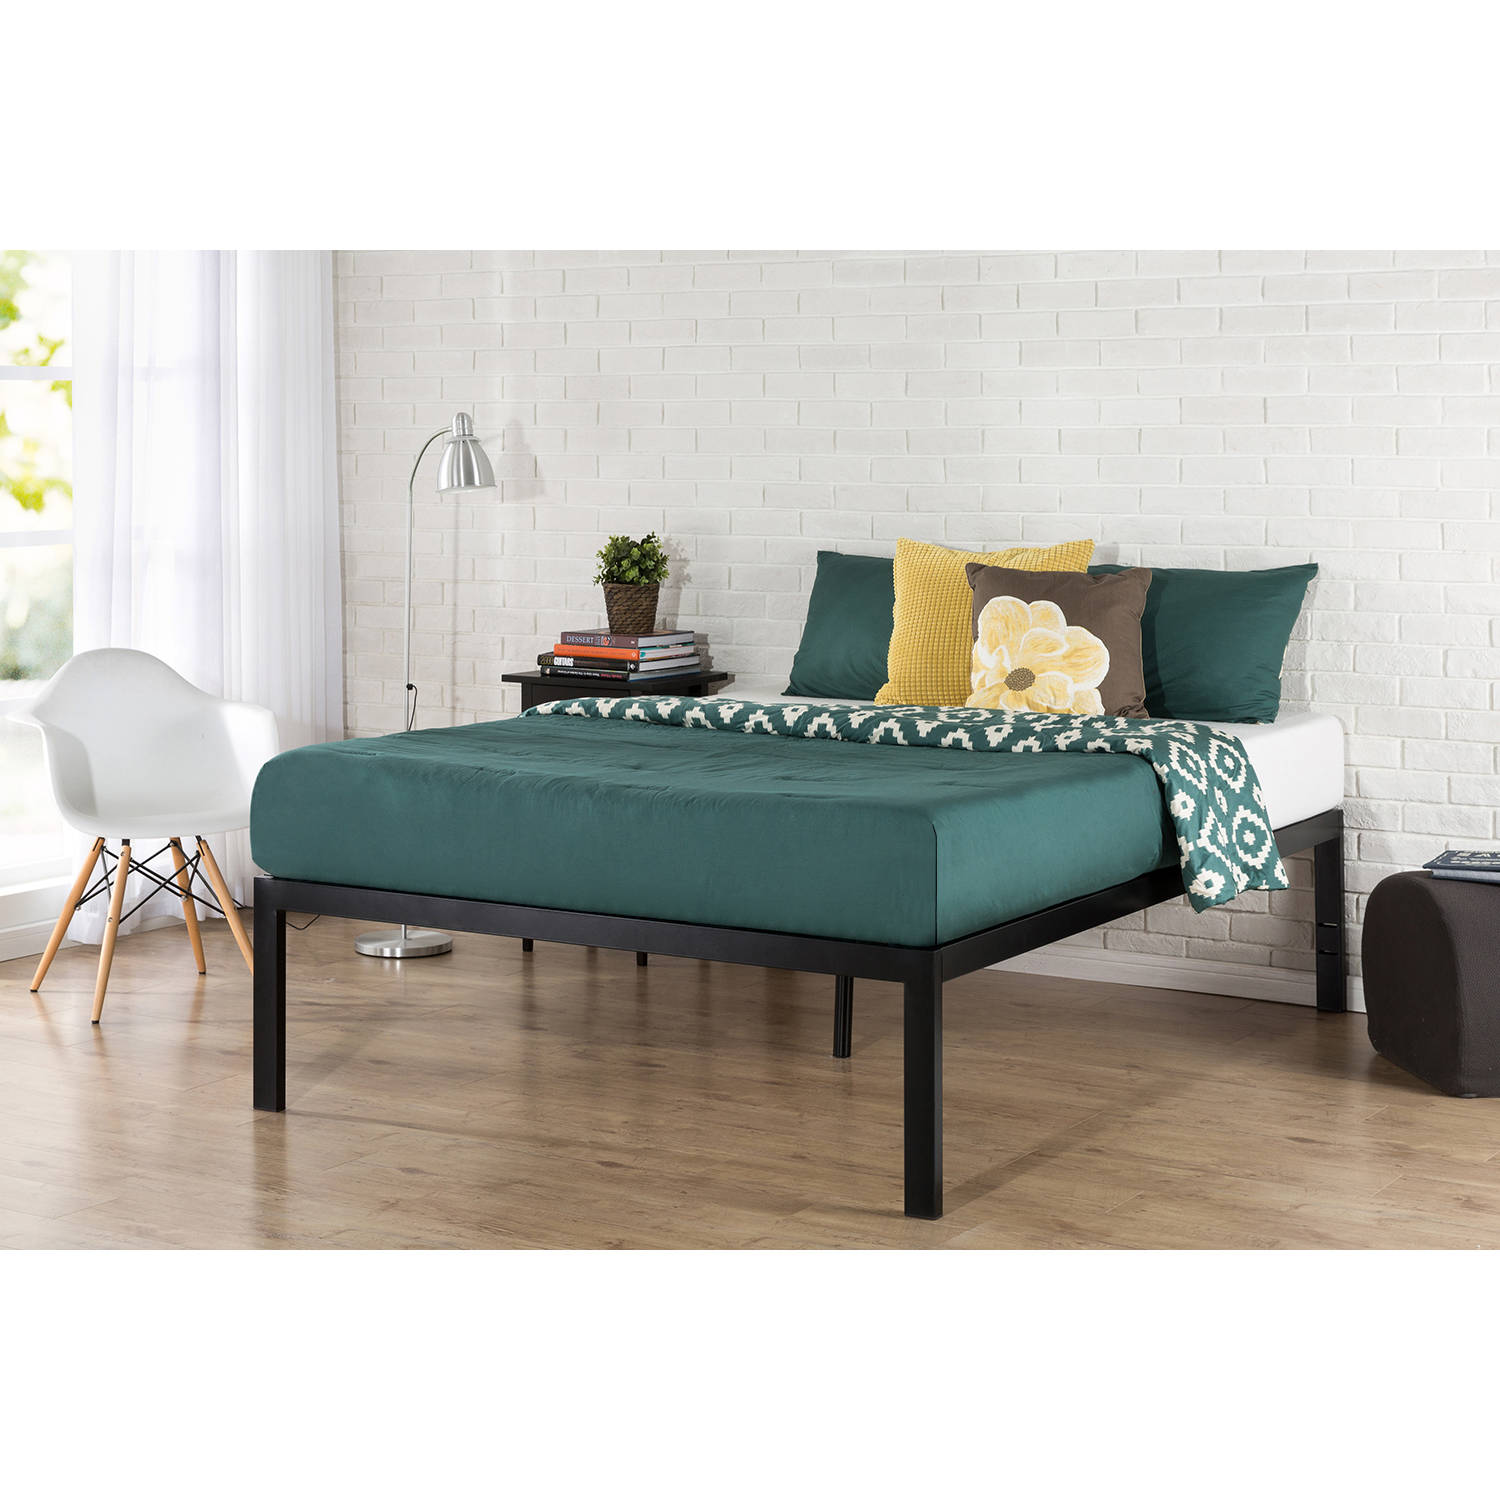 "Zinus Lorrick 18"" Quick Snap Metal Platform Bed, No Box Spring Needed, Multiple Sizes"